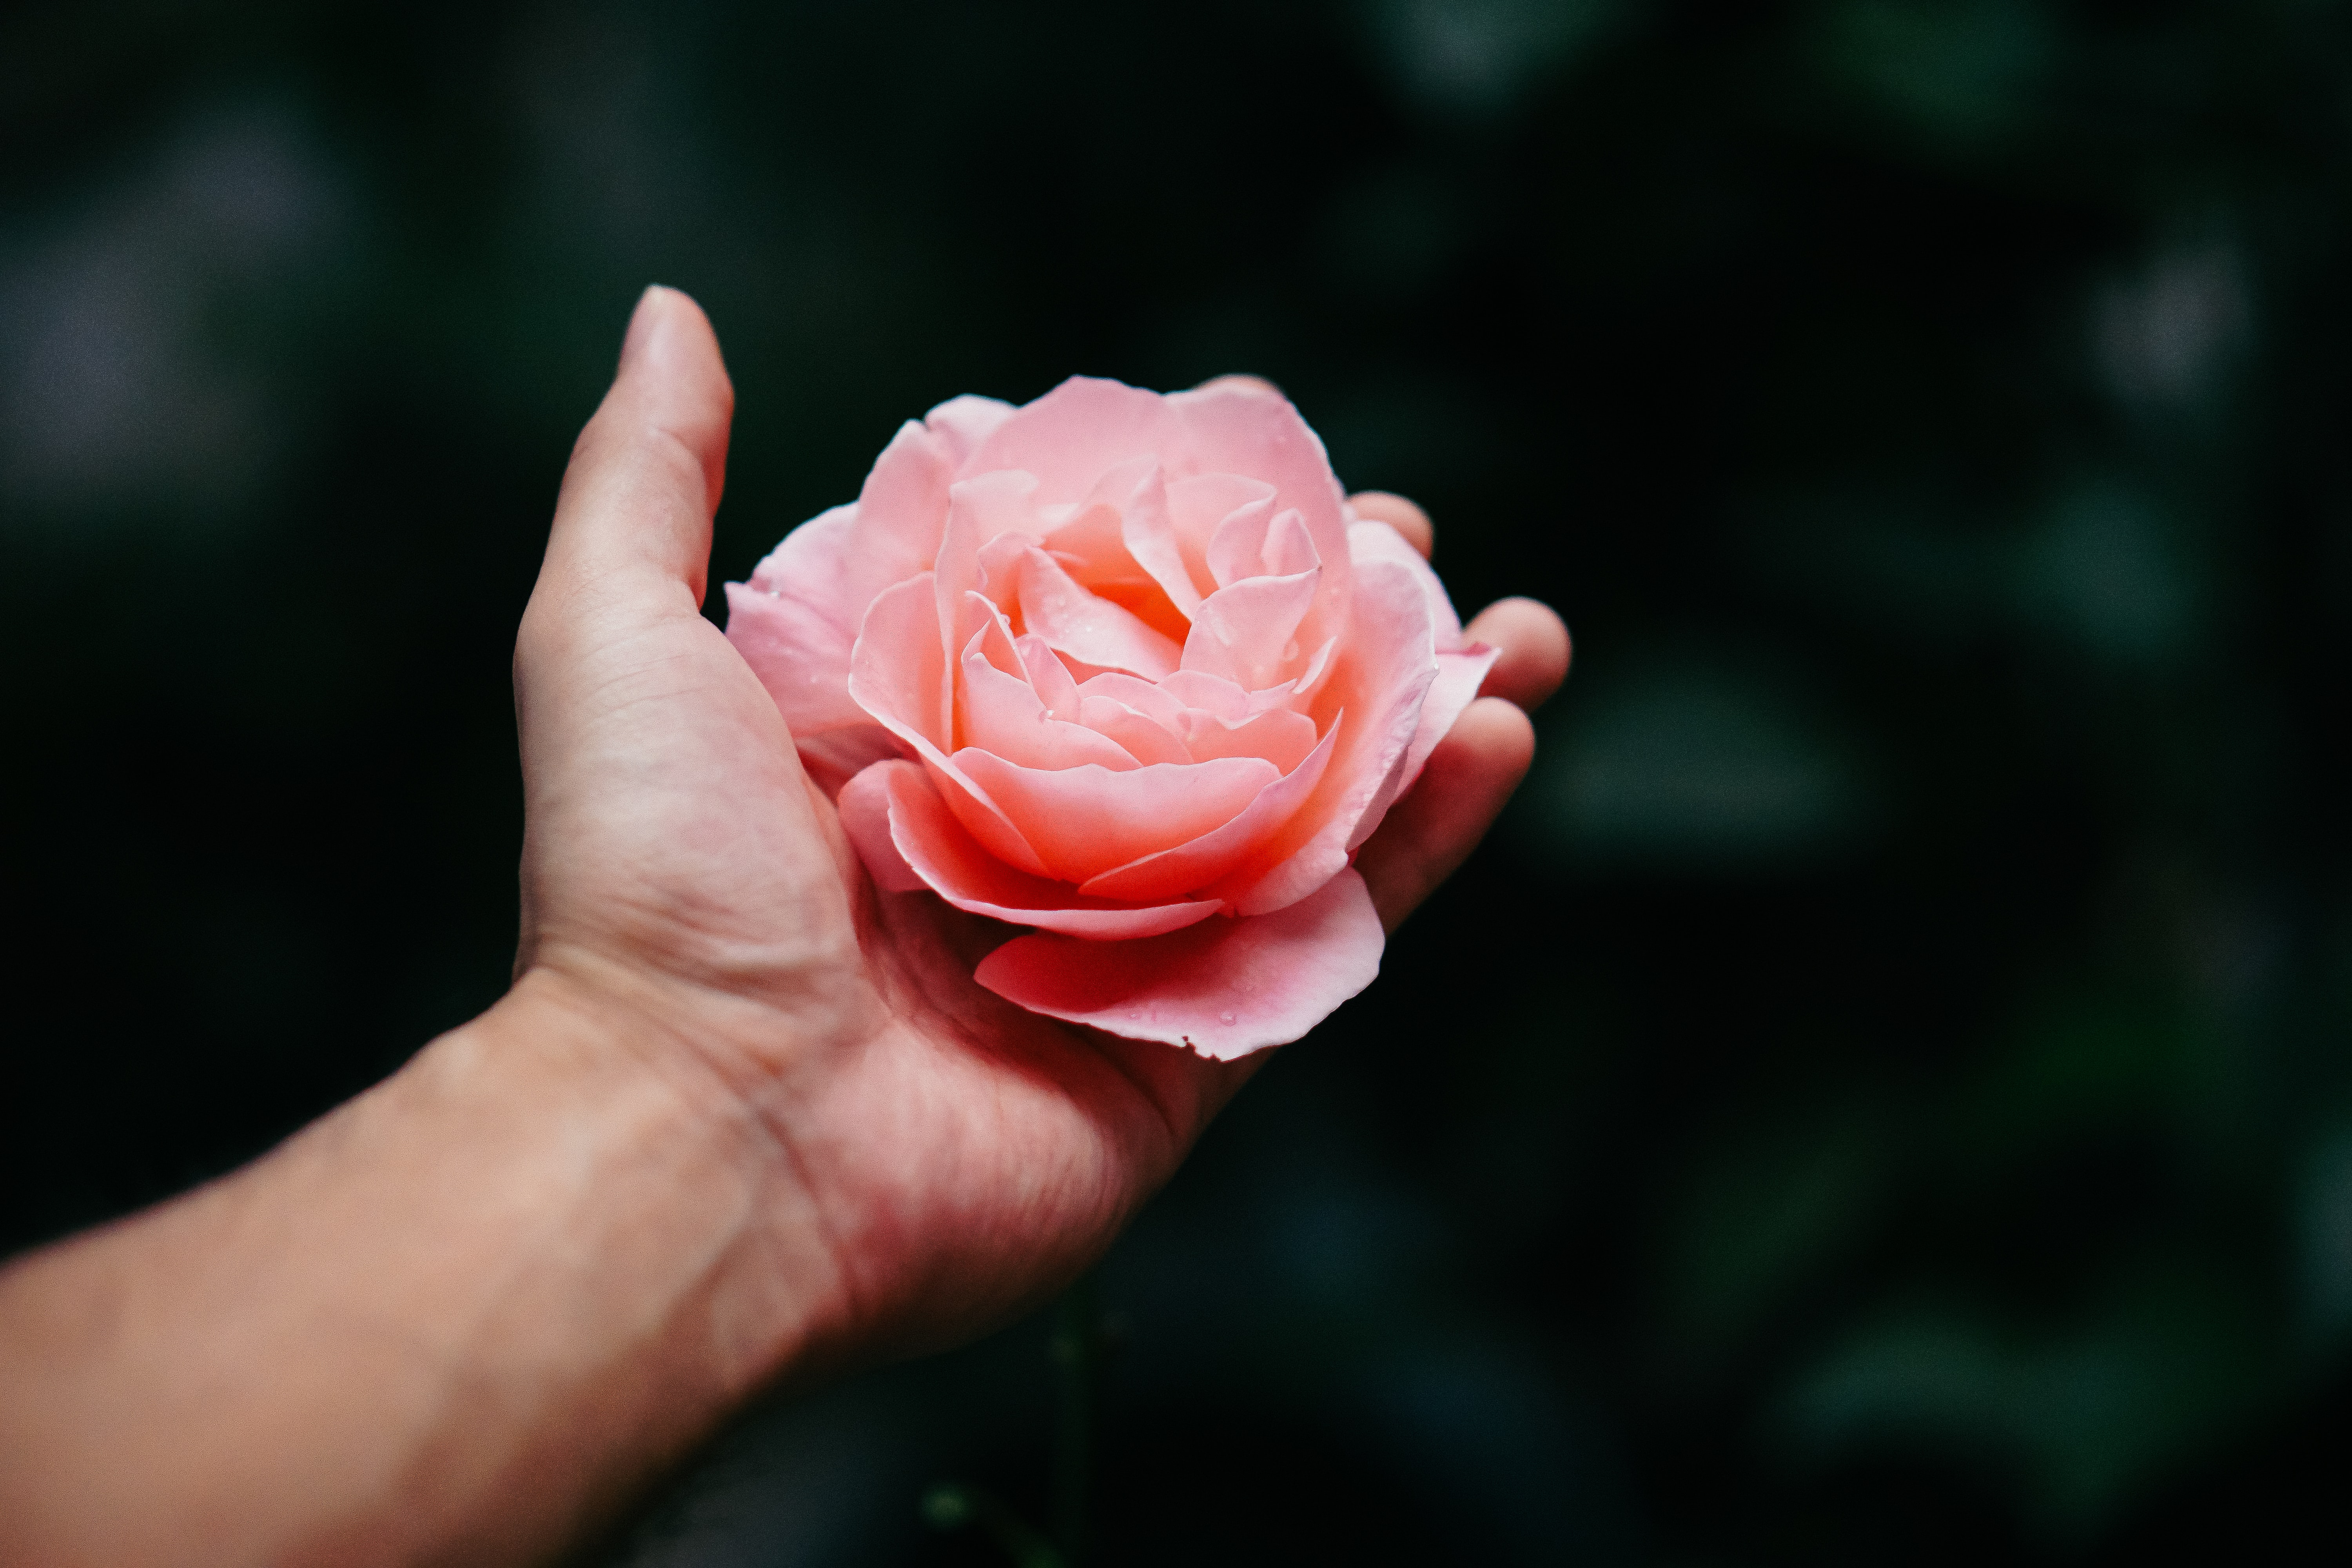 A light pink rose flower in a person's hands